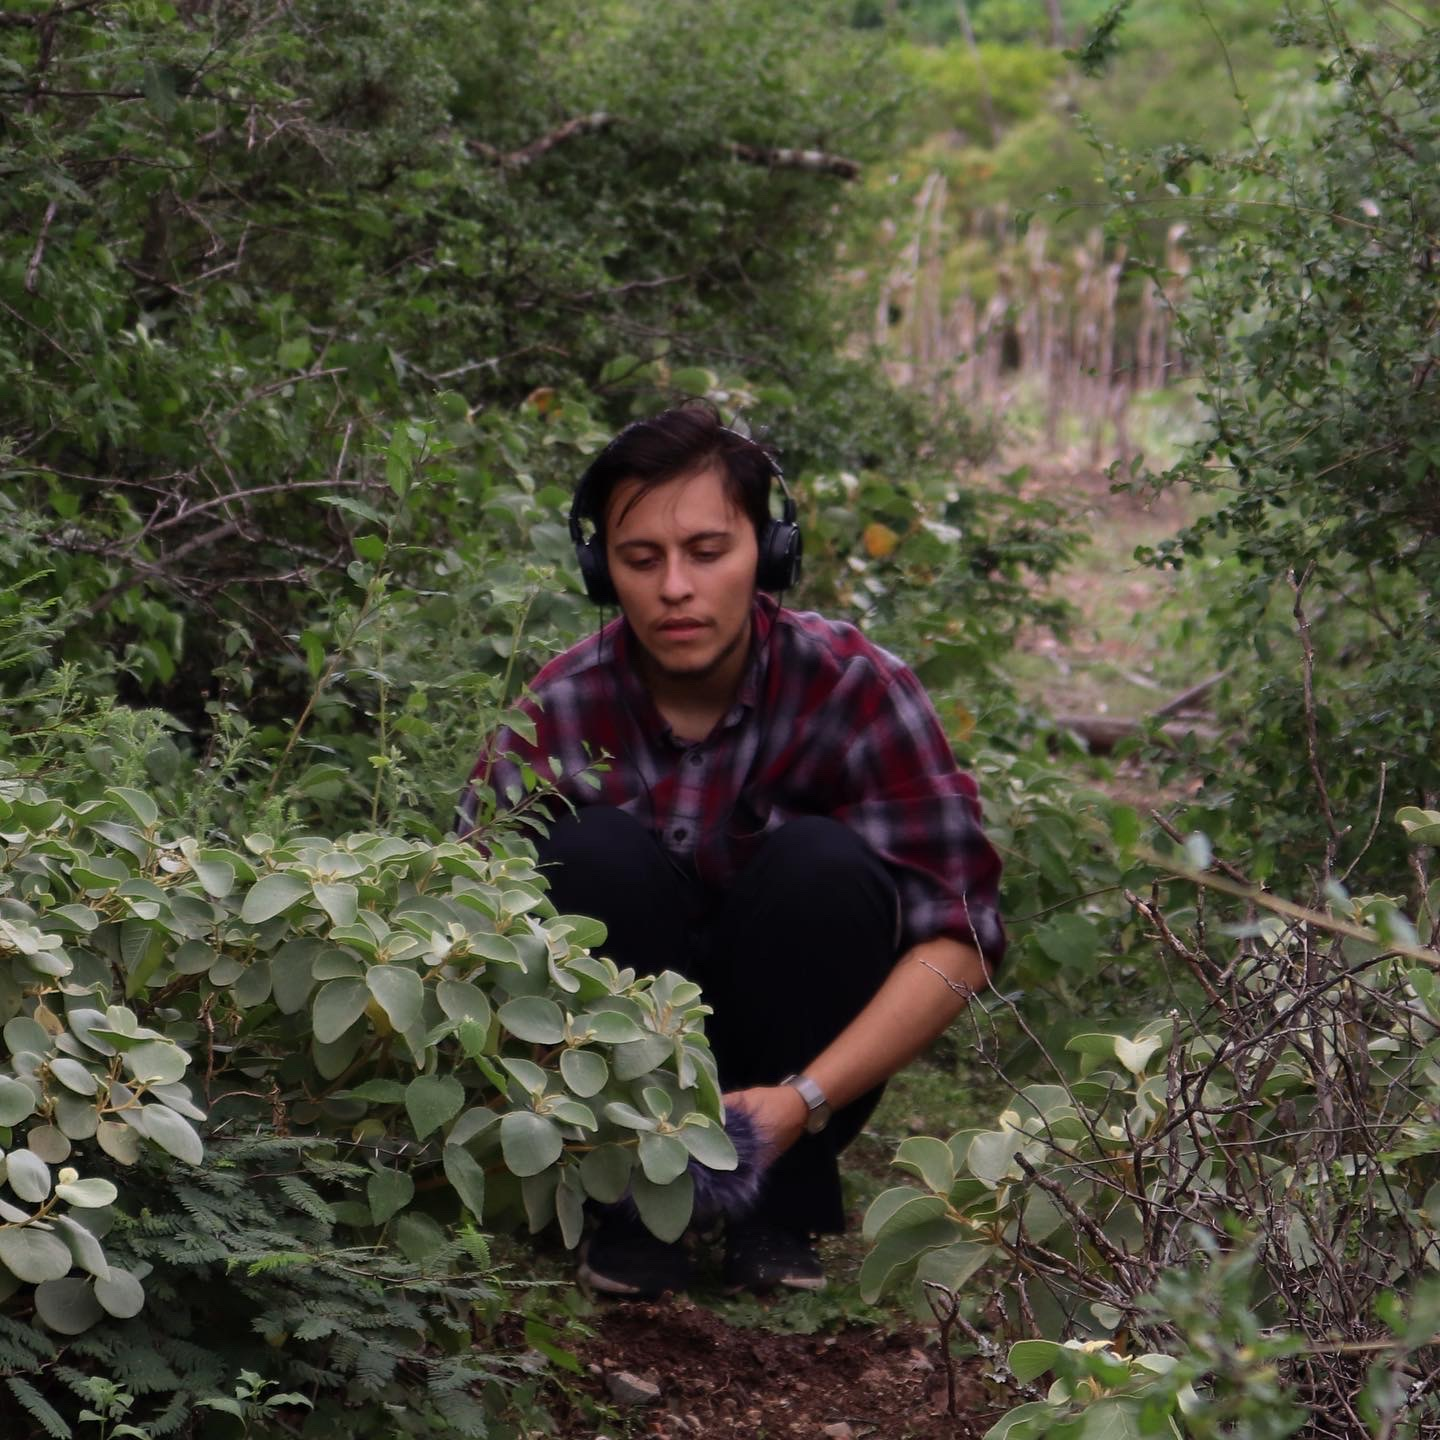 A light skin mestizo man squats down surrounded by thick green bushes. He uses black over-the-ear headphones to listen intently to sounds picked up through an audio recorder in his hand but obscured by the foliage. He is wearing a burgundy and grey plaid flannel and black pants.